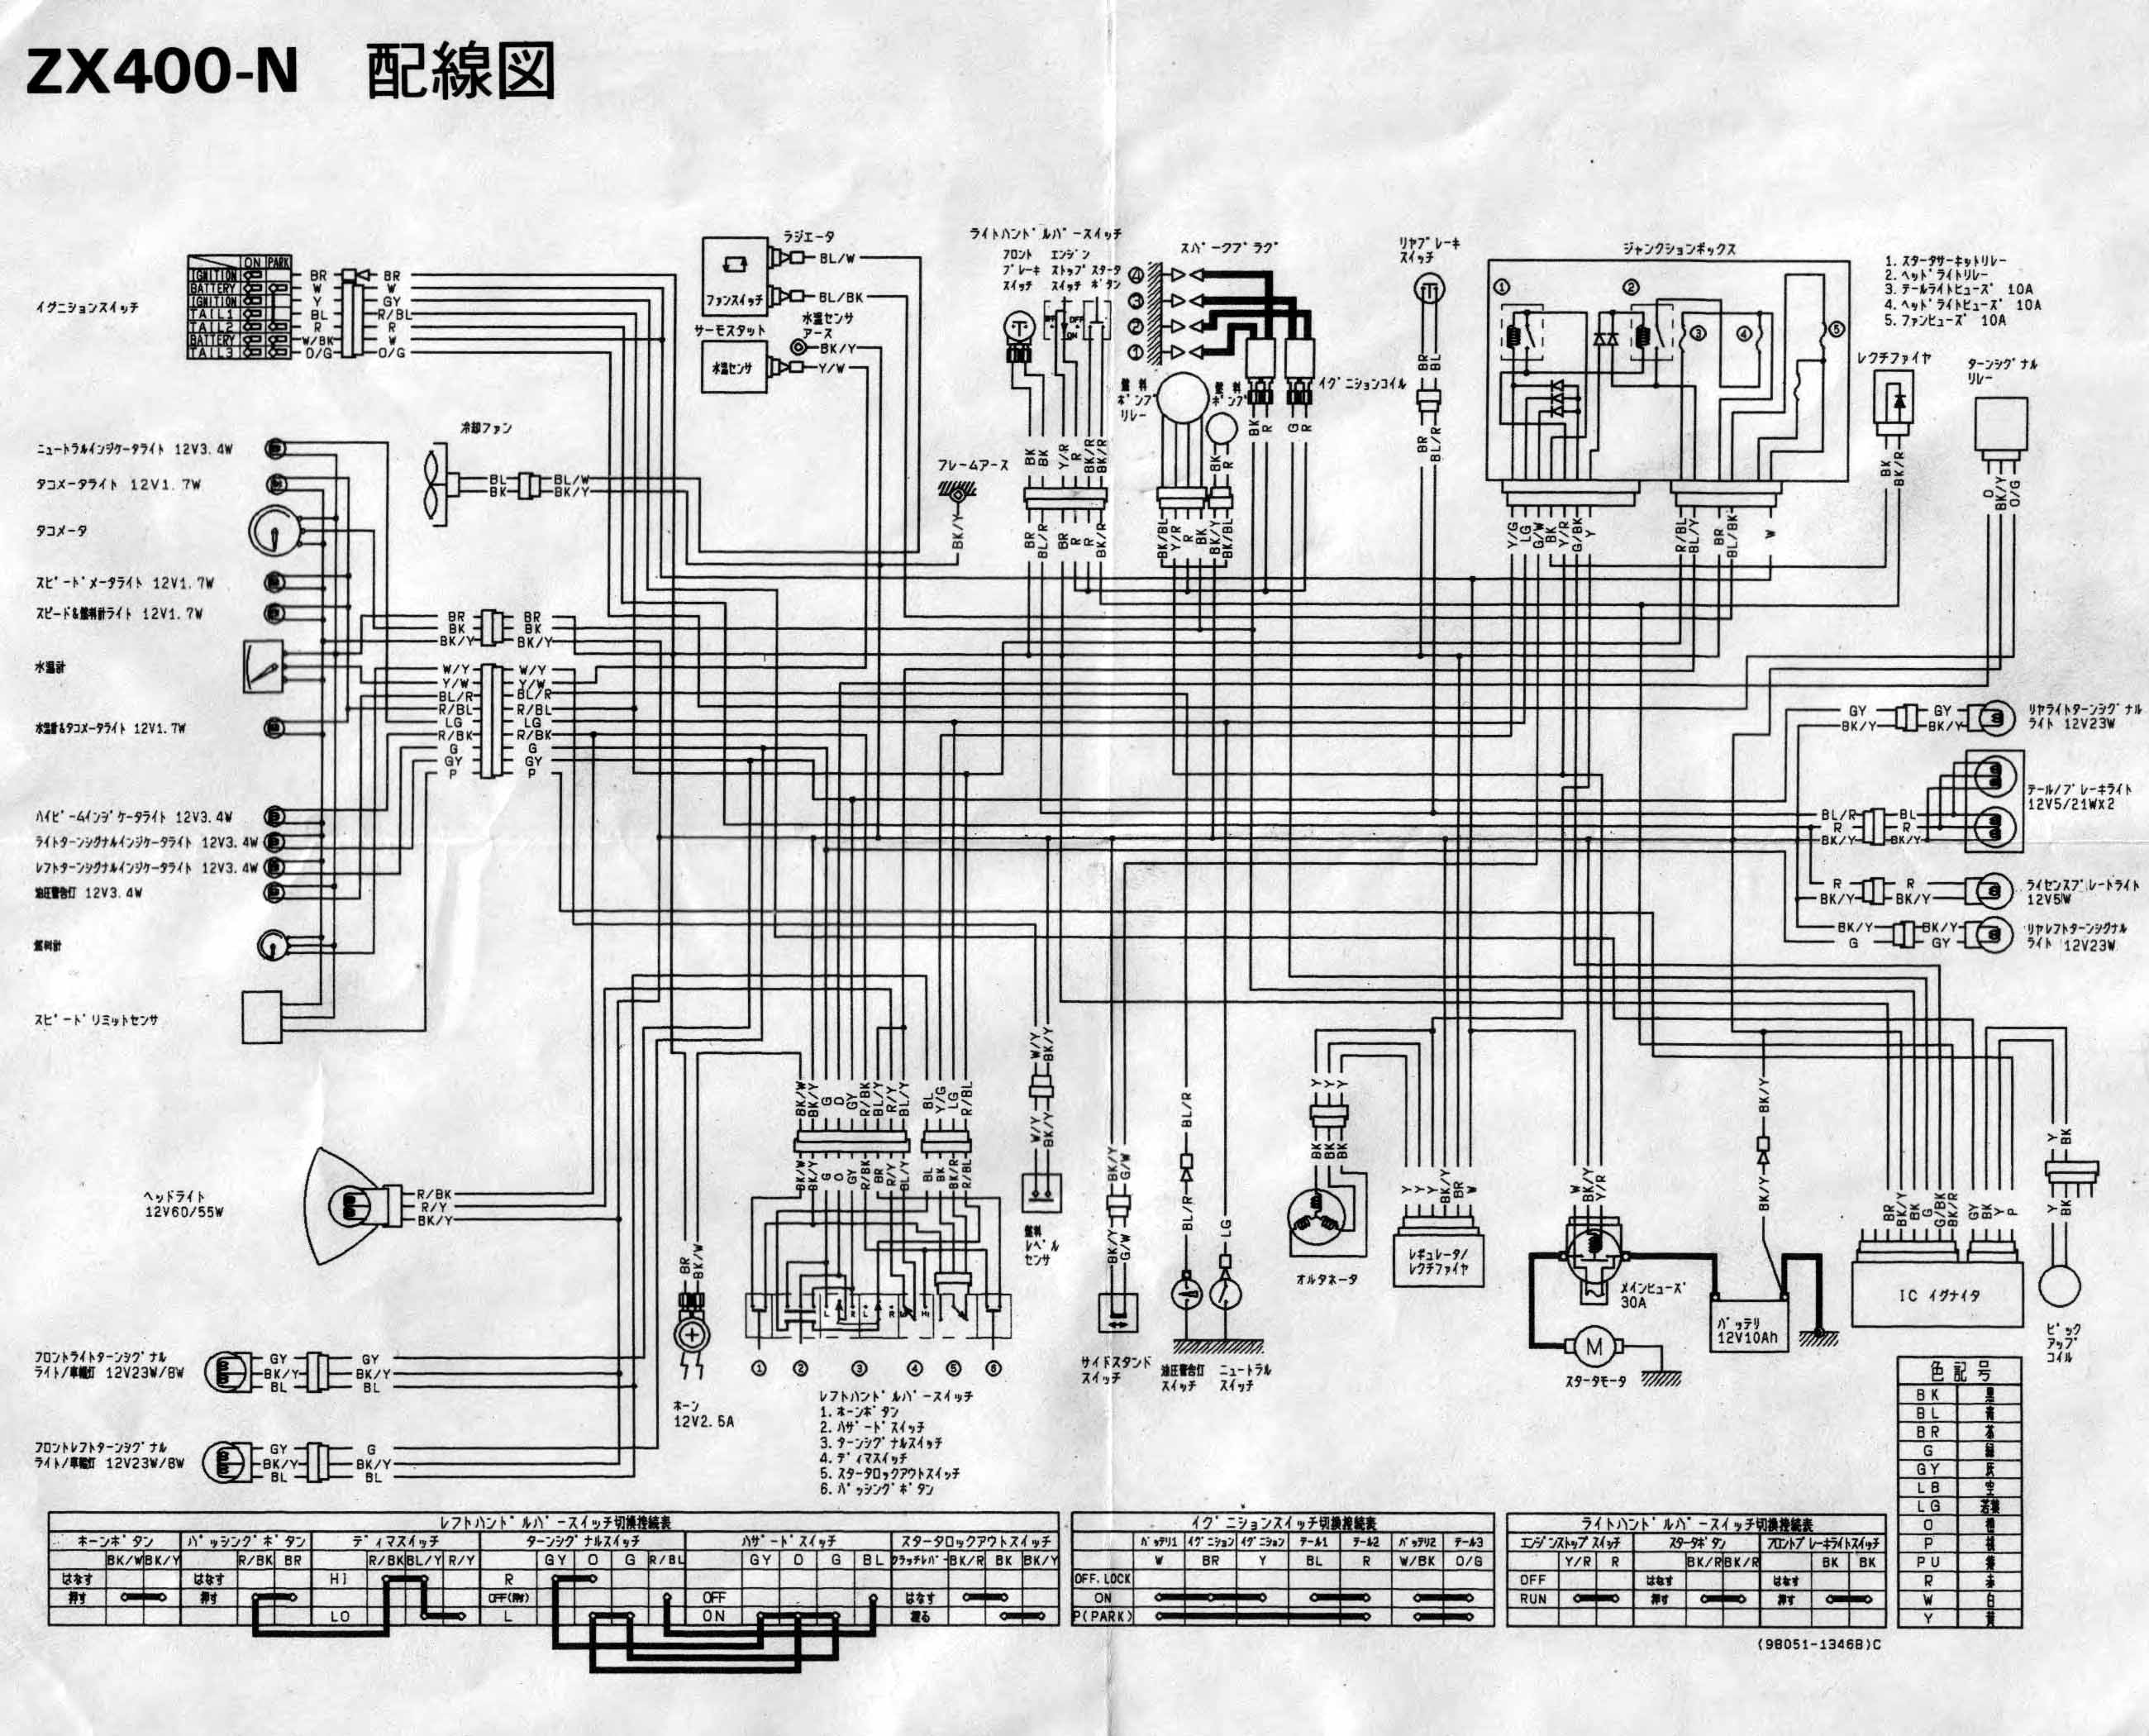 kawasaki zzr 400 wiring diagram circuit diagram symbols \u2022 zxr 400 l wiring  diagram at